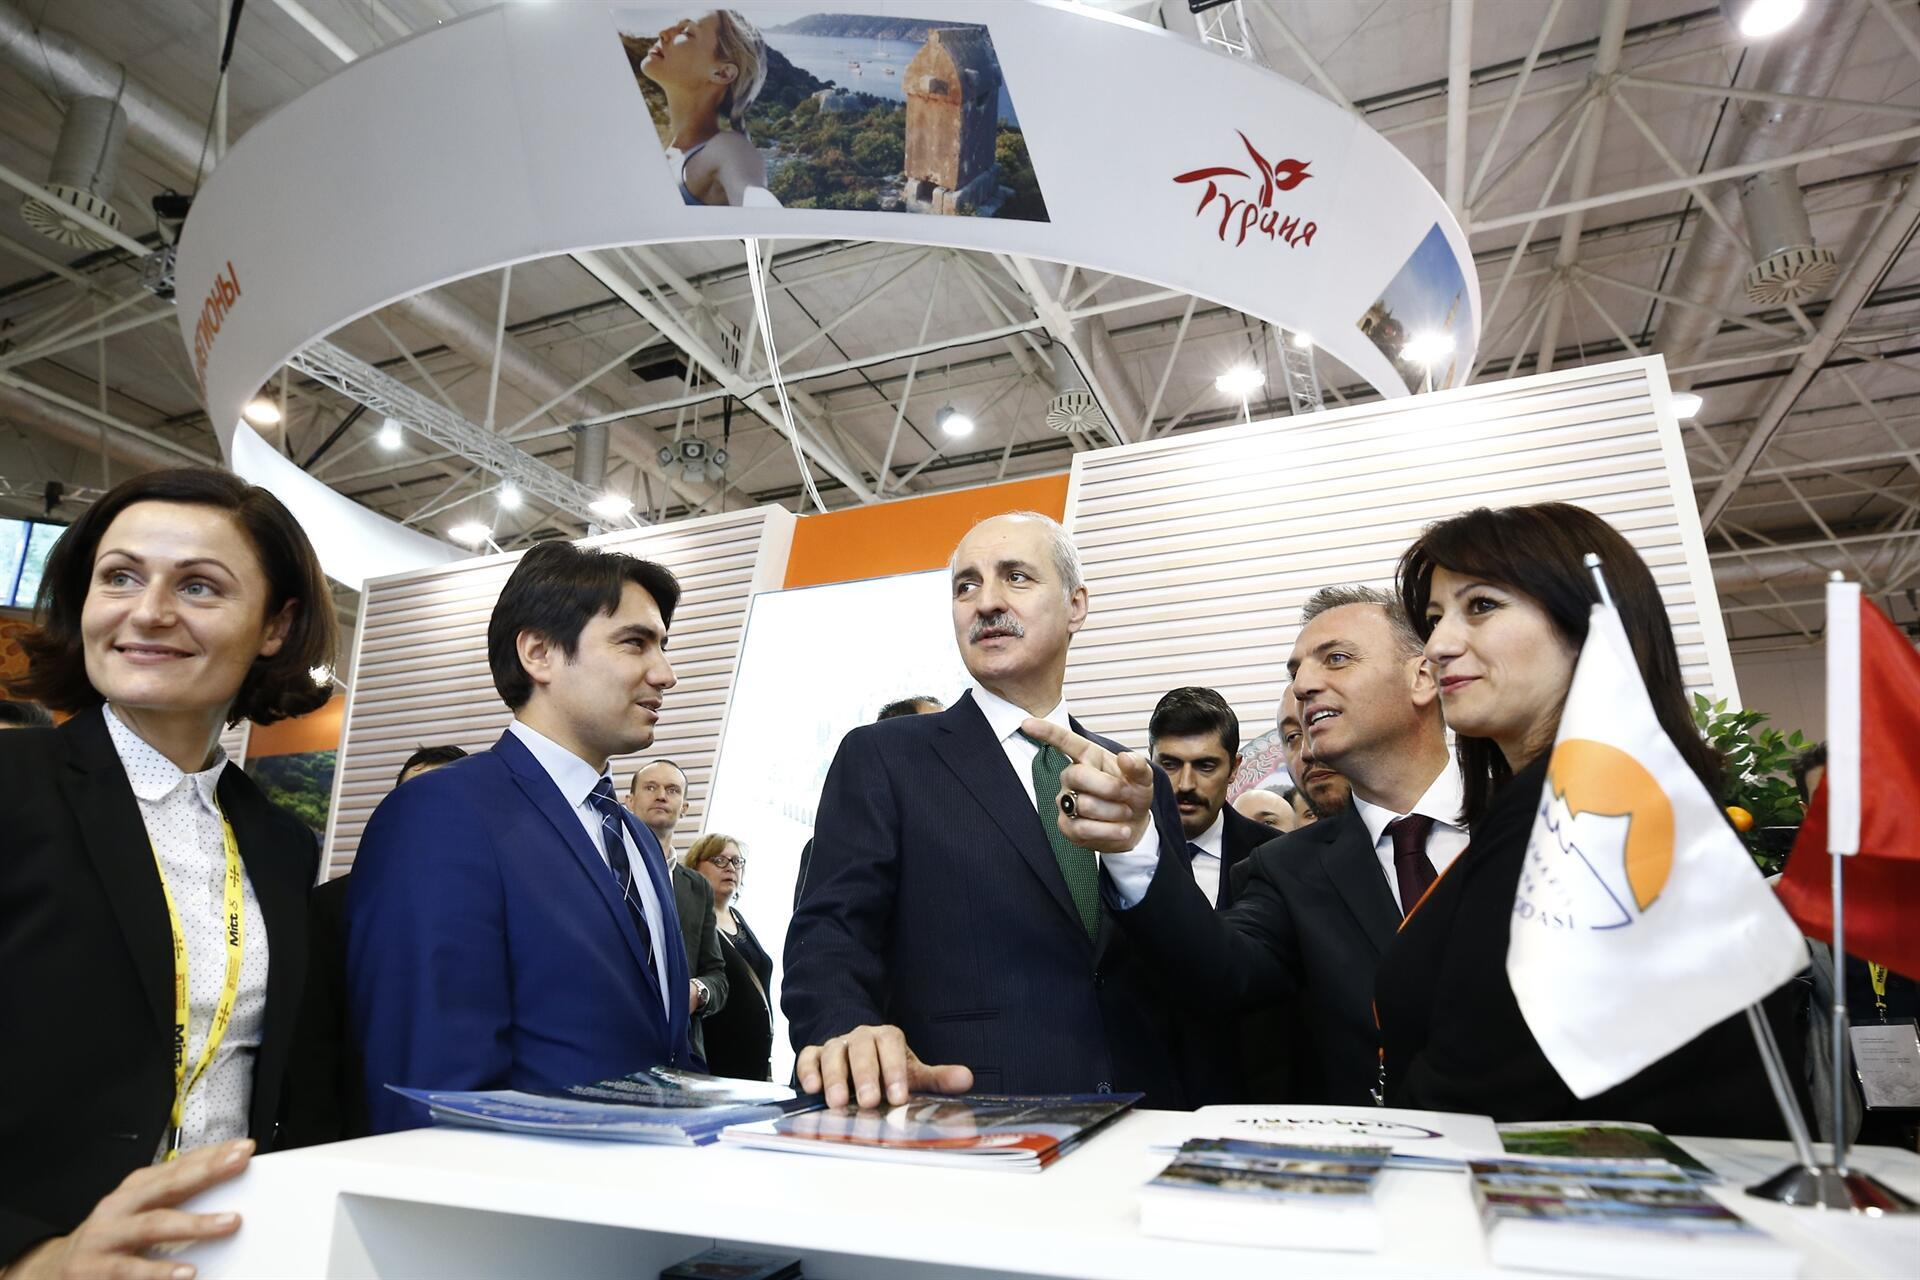 2019 will be Turkish Culture Year in Russia': Minister - Latest News